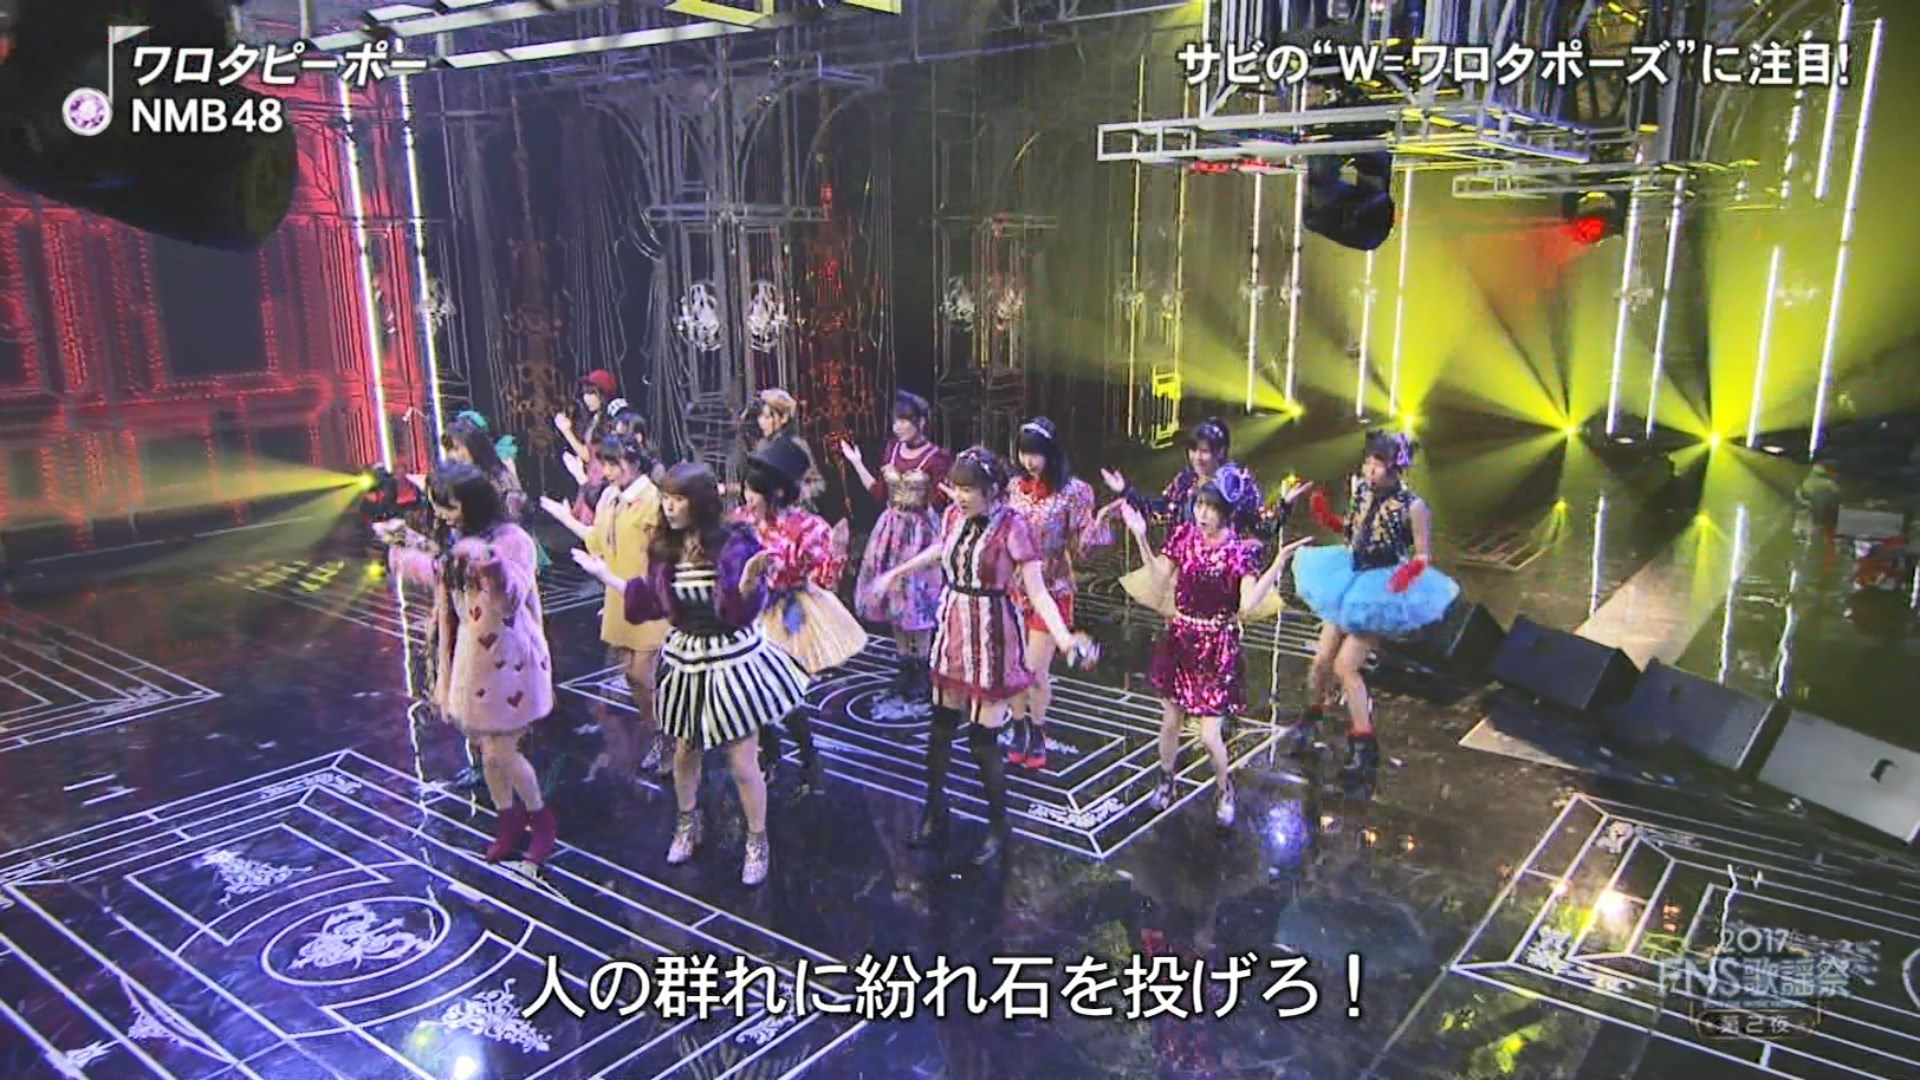 2017FNS歌謡祭第2夜・NMB48ワロタピーポーキャプ-068